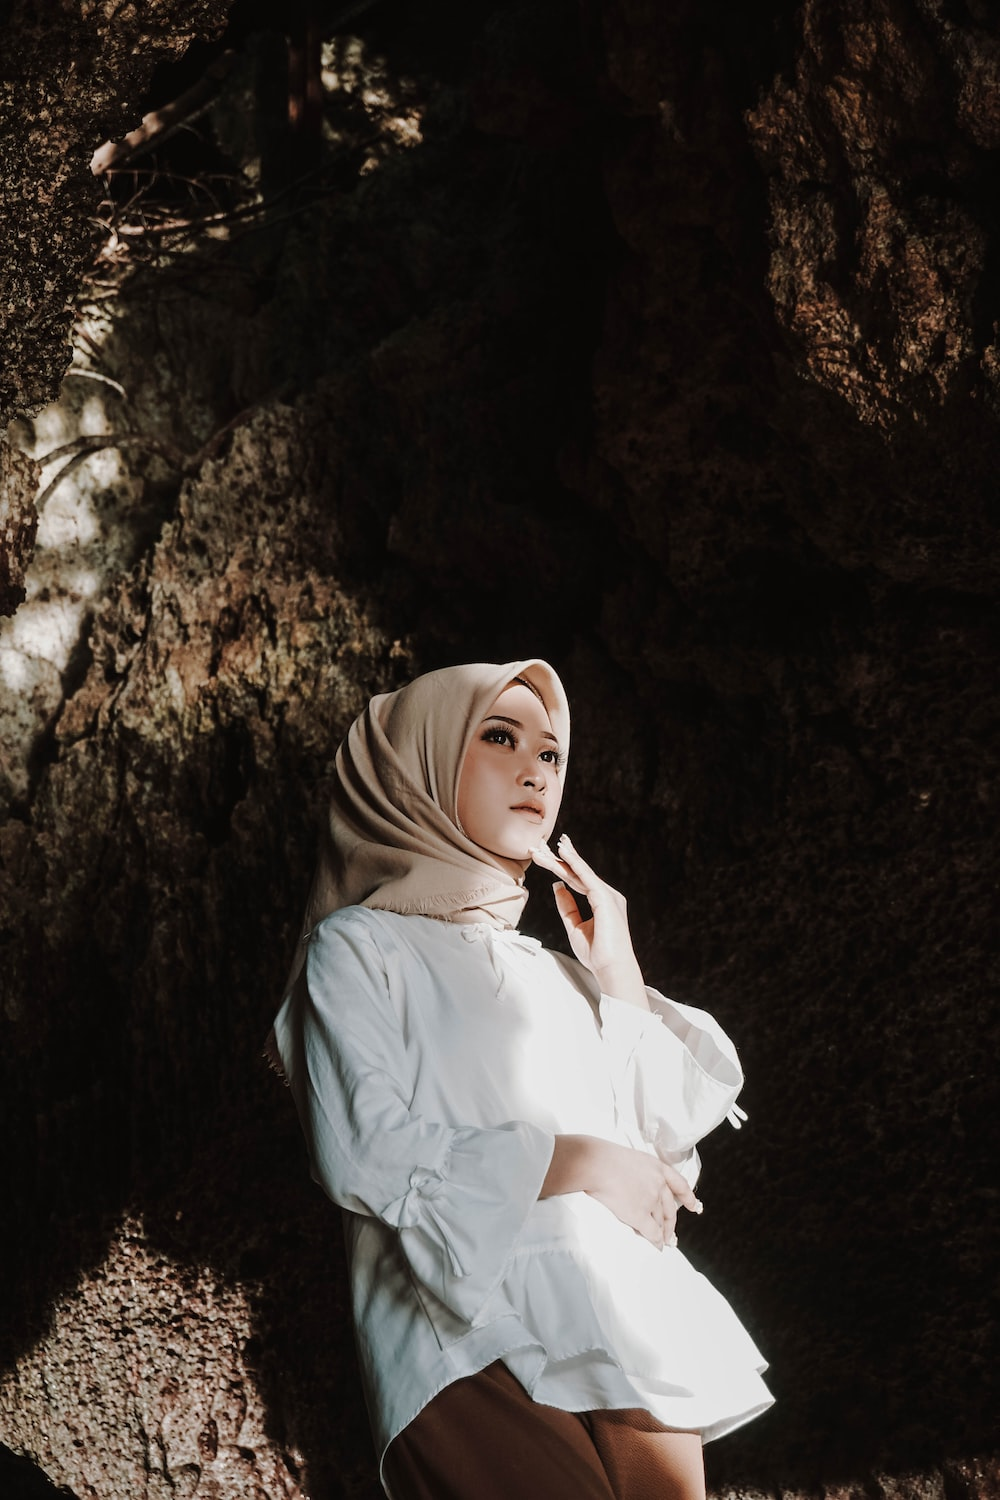 woman in white hijab and white dress